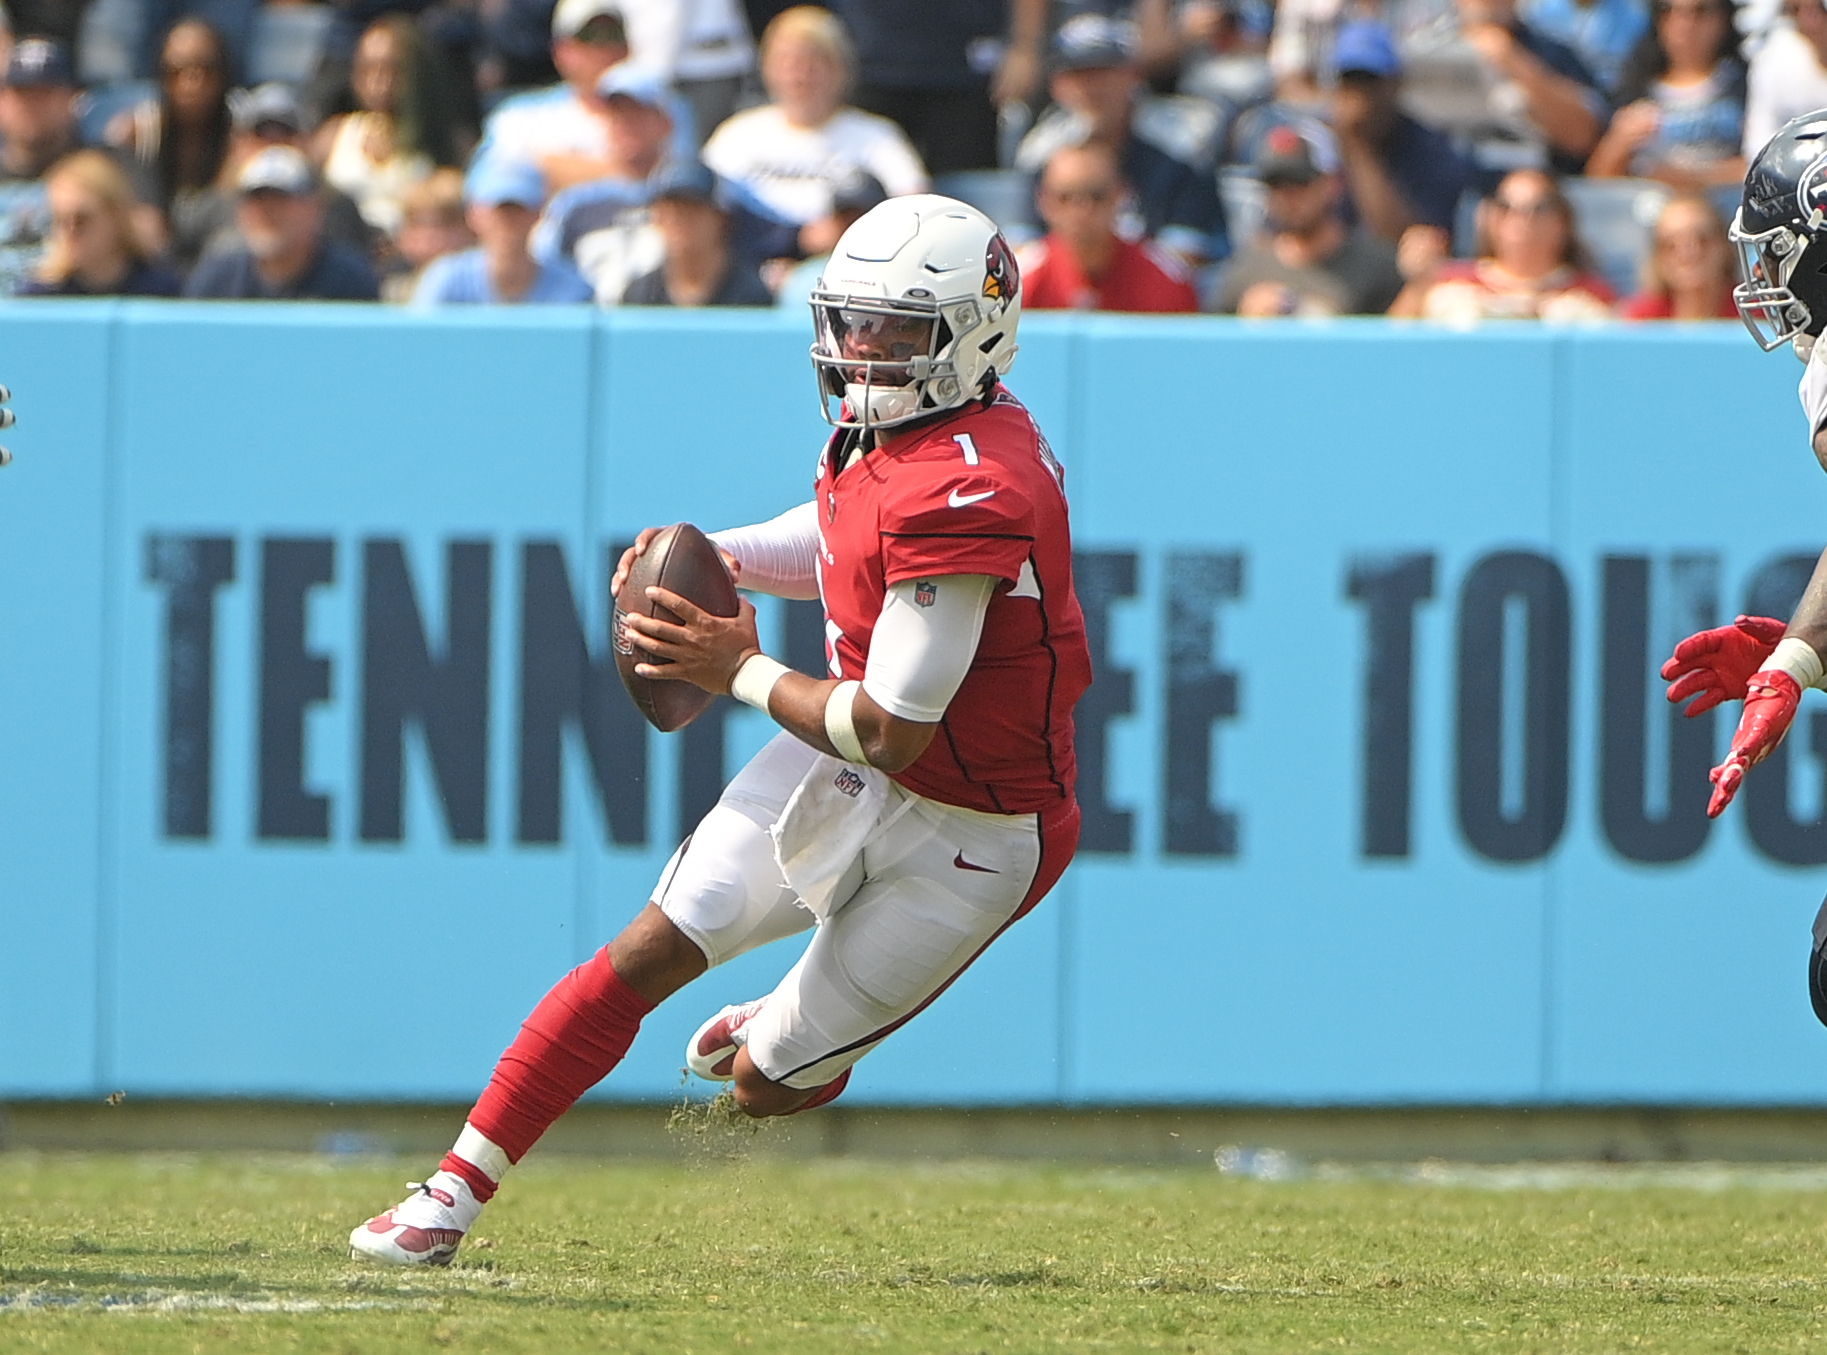 Arizona Cardinals quarterback Kyler Murray (1) runs with the ball against the Tennessee Titans during the second half at Nissan Stadium.